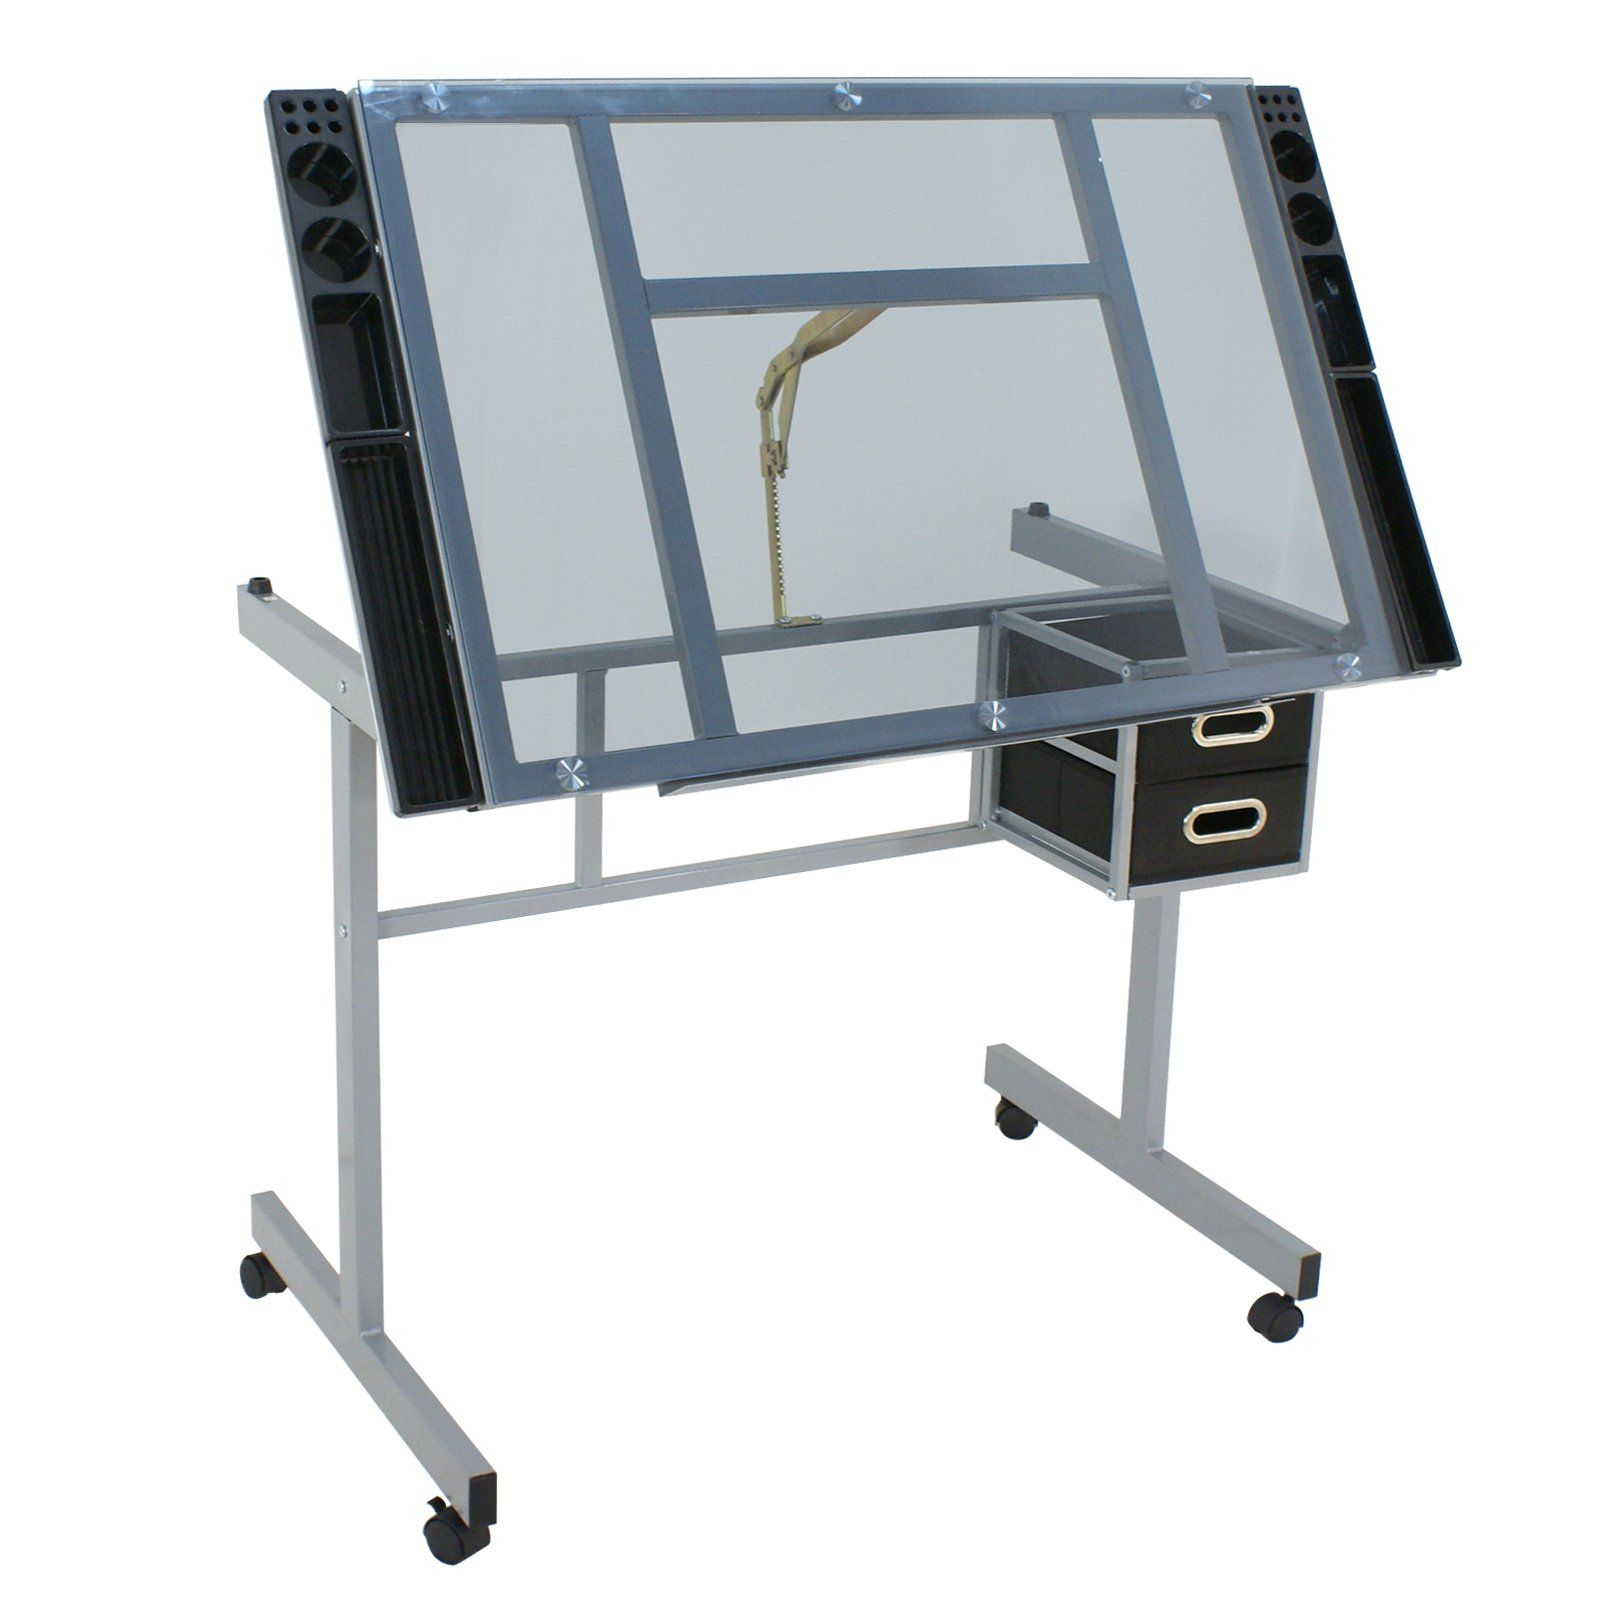 1600x1600 Drafting Craft Desk Station Glass Top Drawing Art Work Table